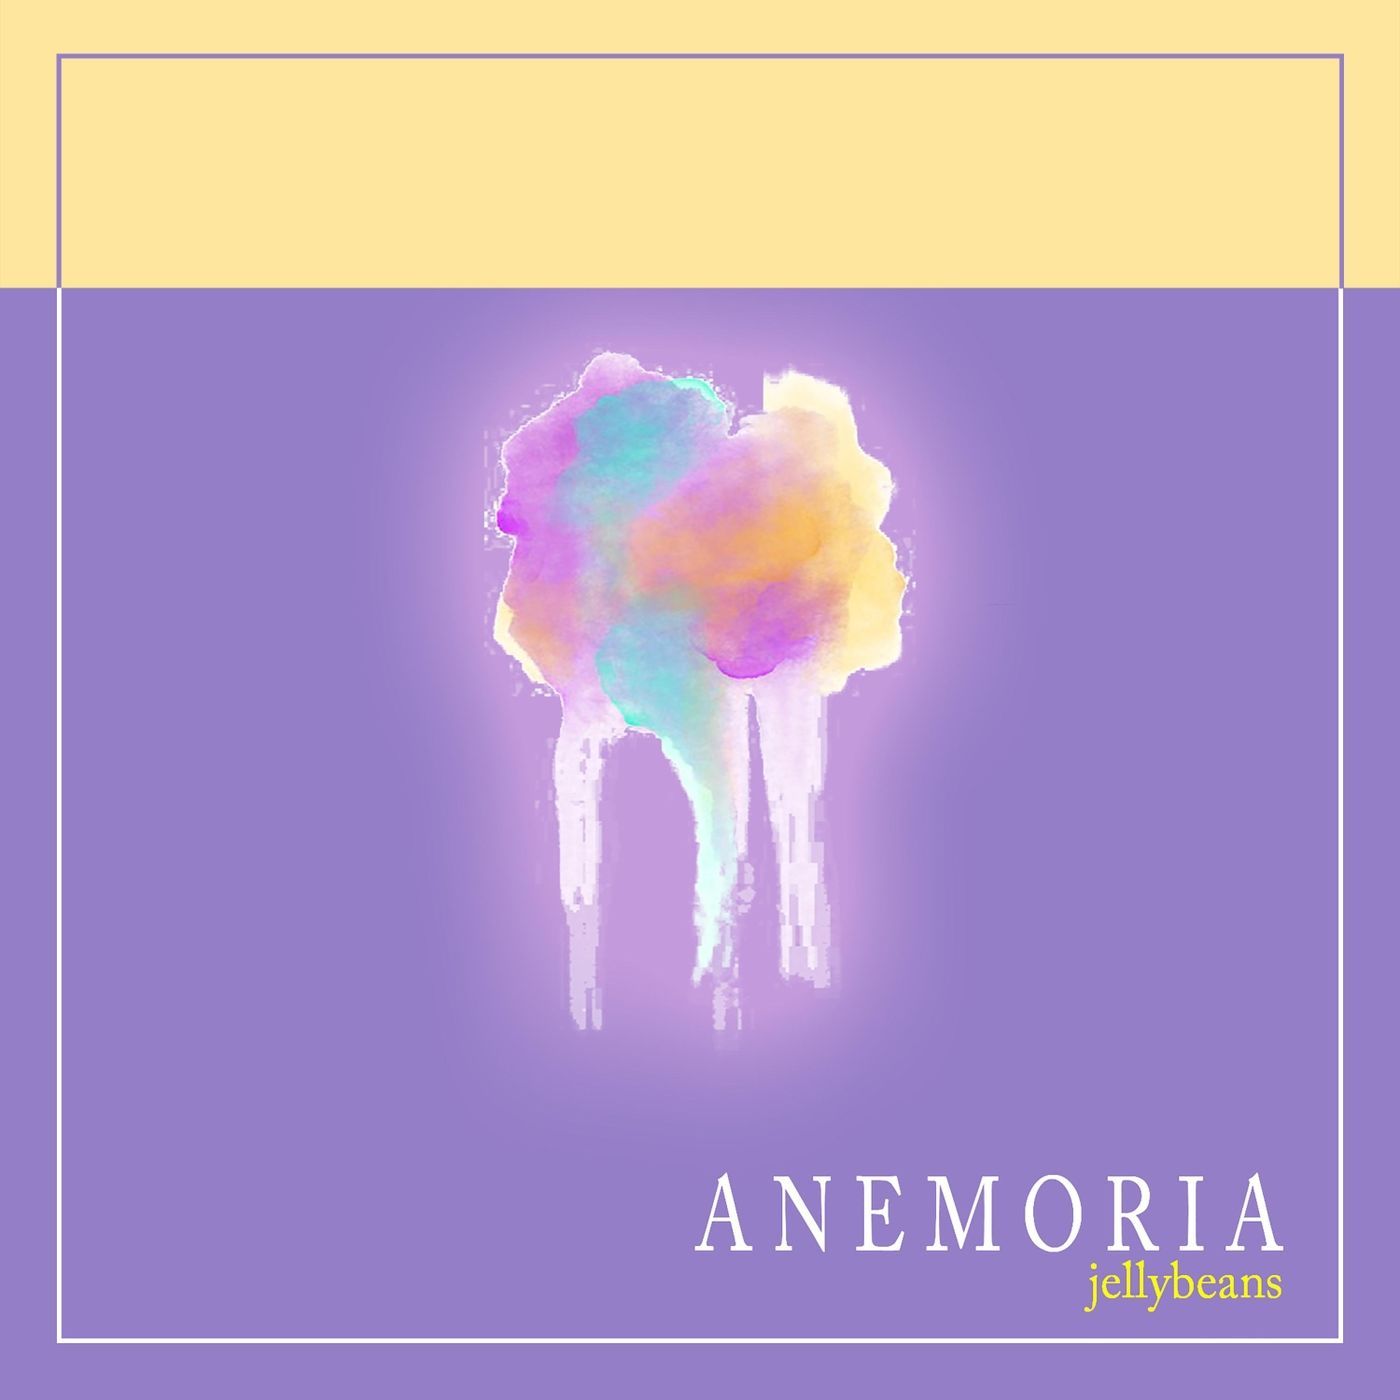 Anemoria - Jellybeans [single] (2020)